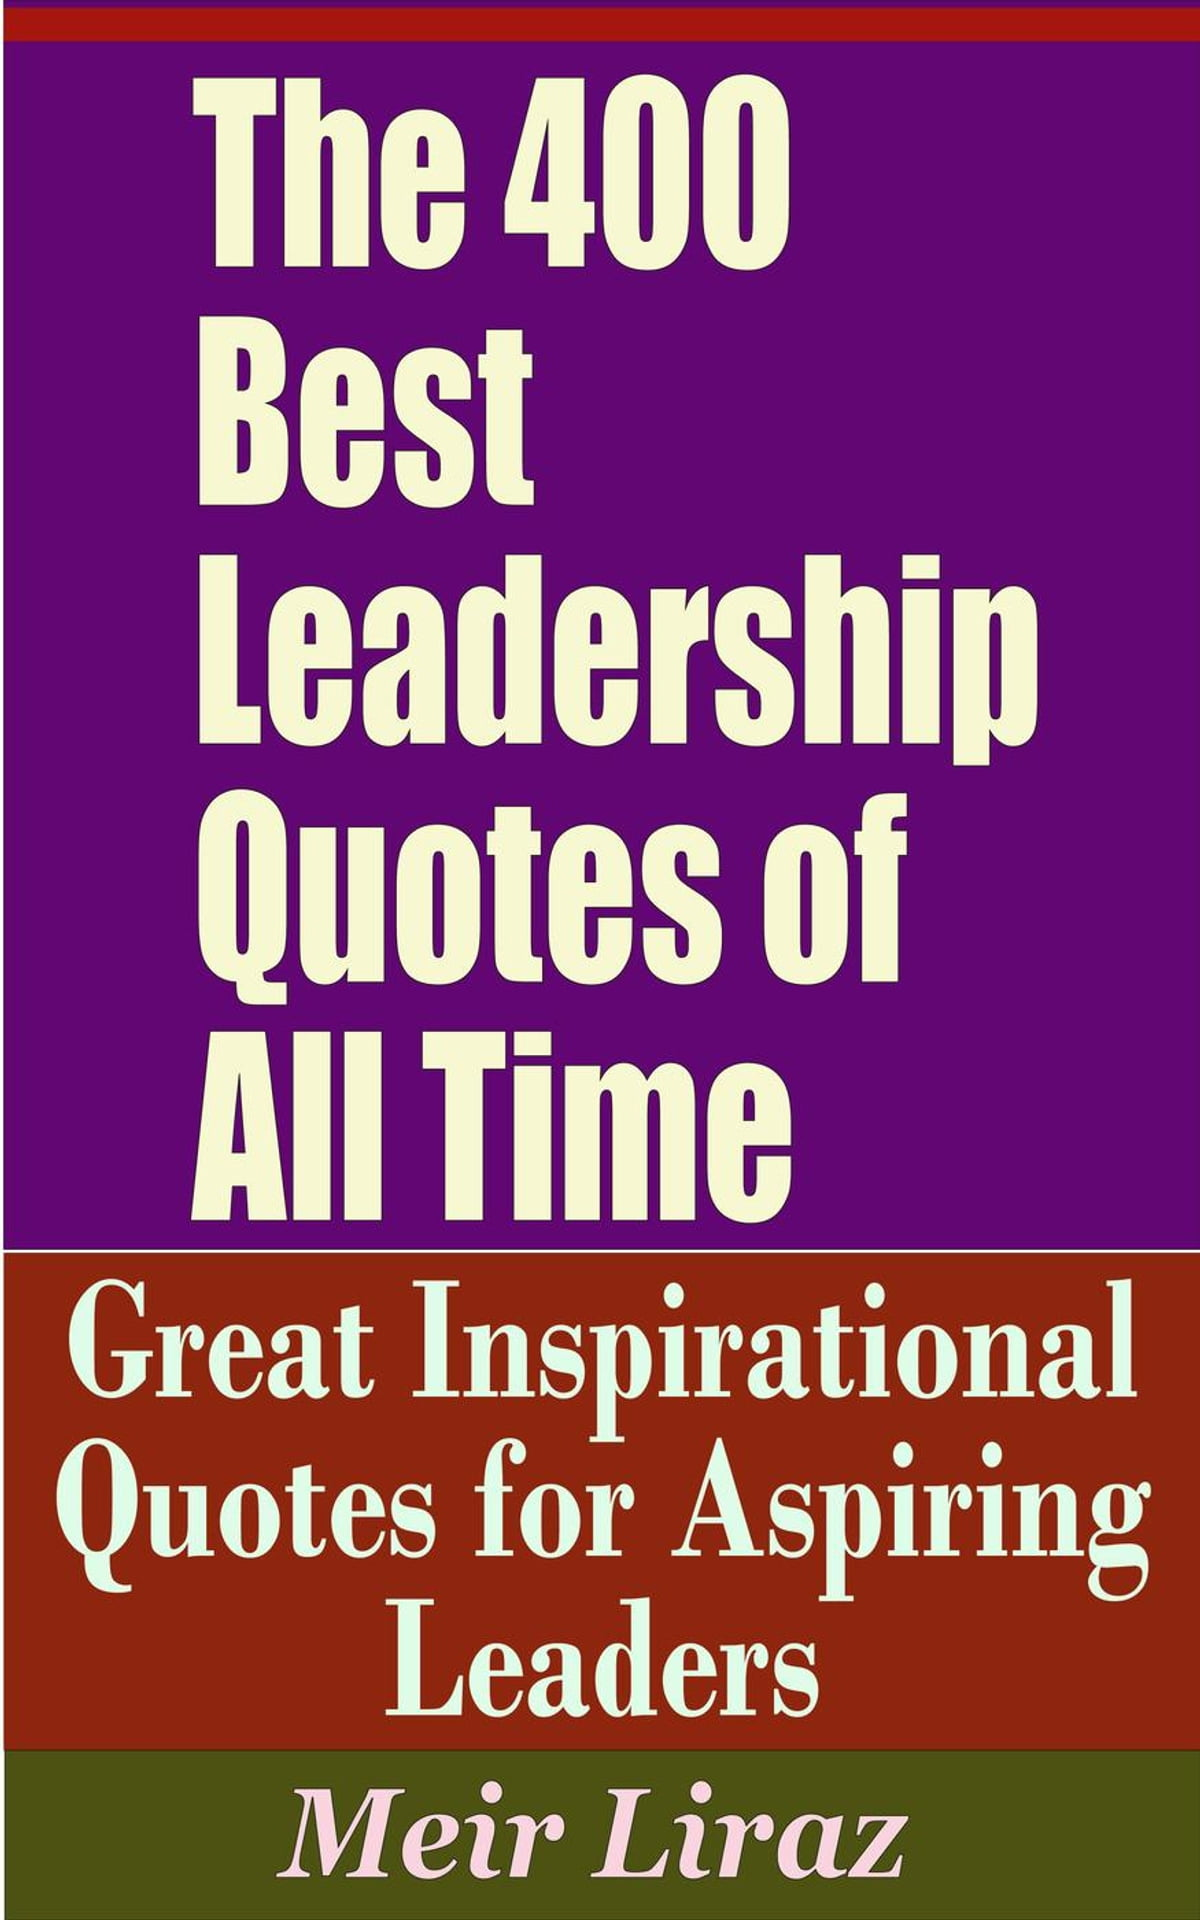 The Best Quotes Of All Time The 400 Best Leadership Quotes Of All Time Great Inspirational